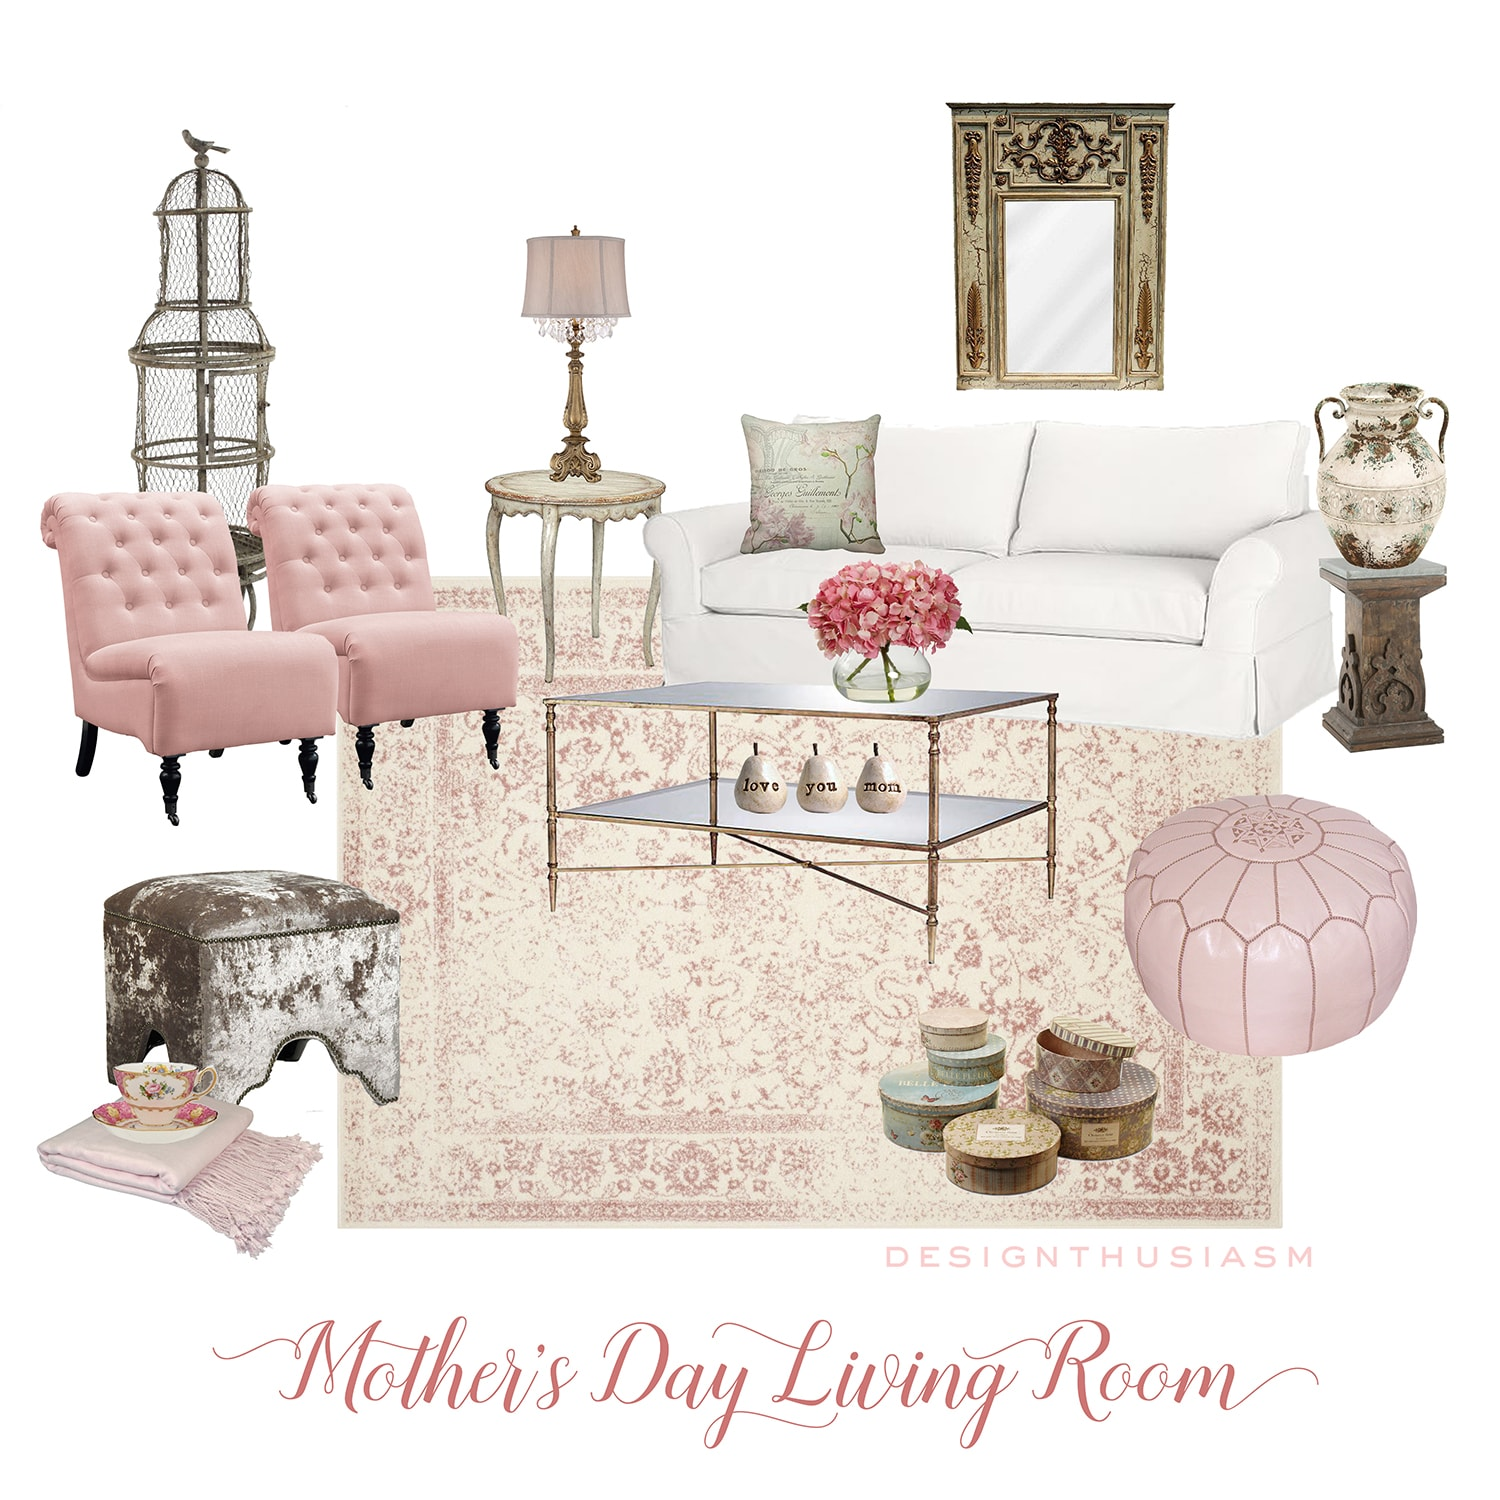 May eDesign | Mother's Day Living Room | Designthusiasm.com